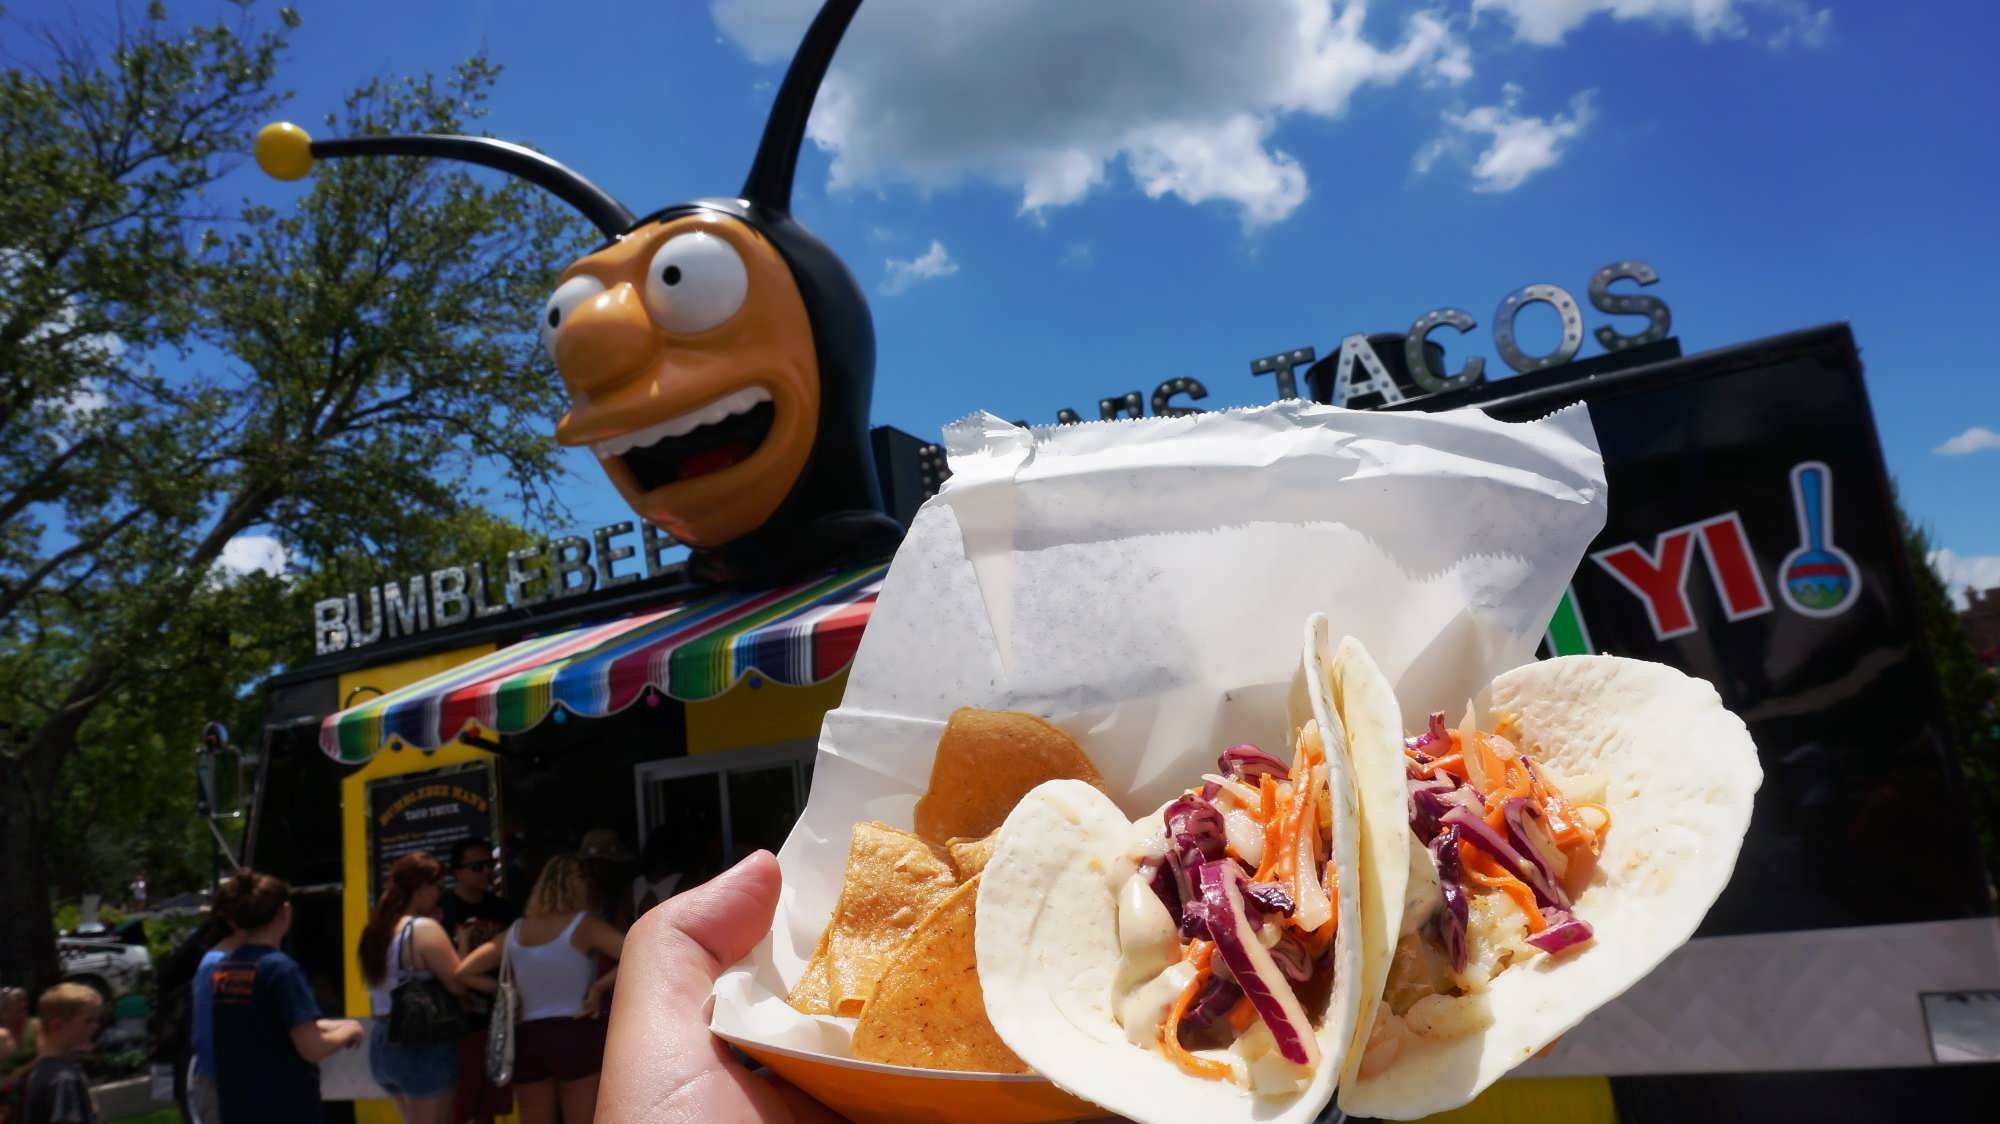 Two tacos and tortilla chips from Bumblebee Man's Taco Truck